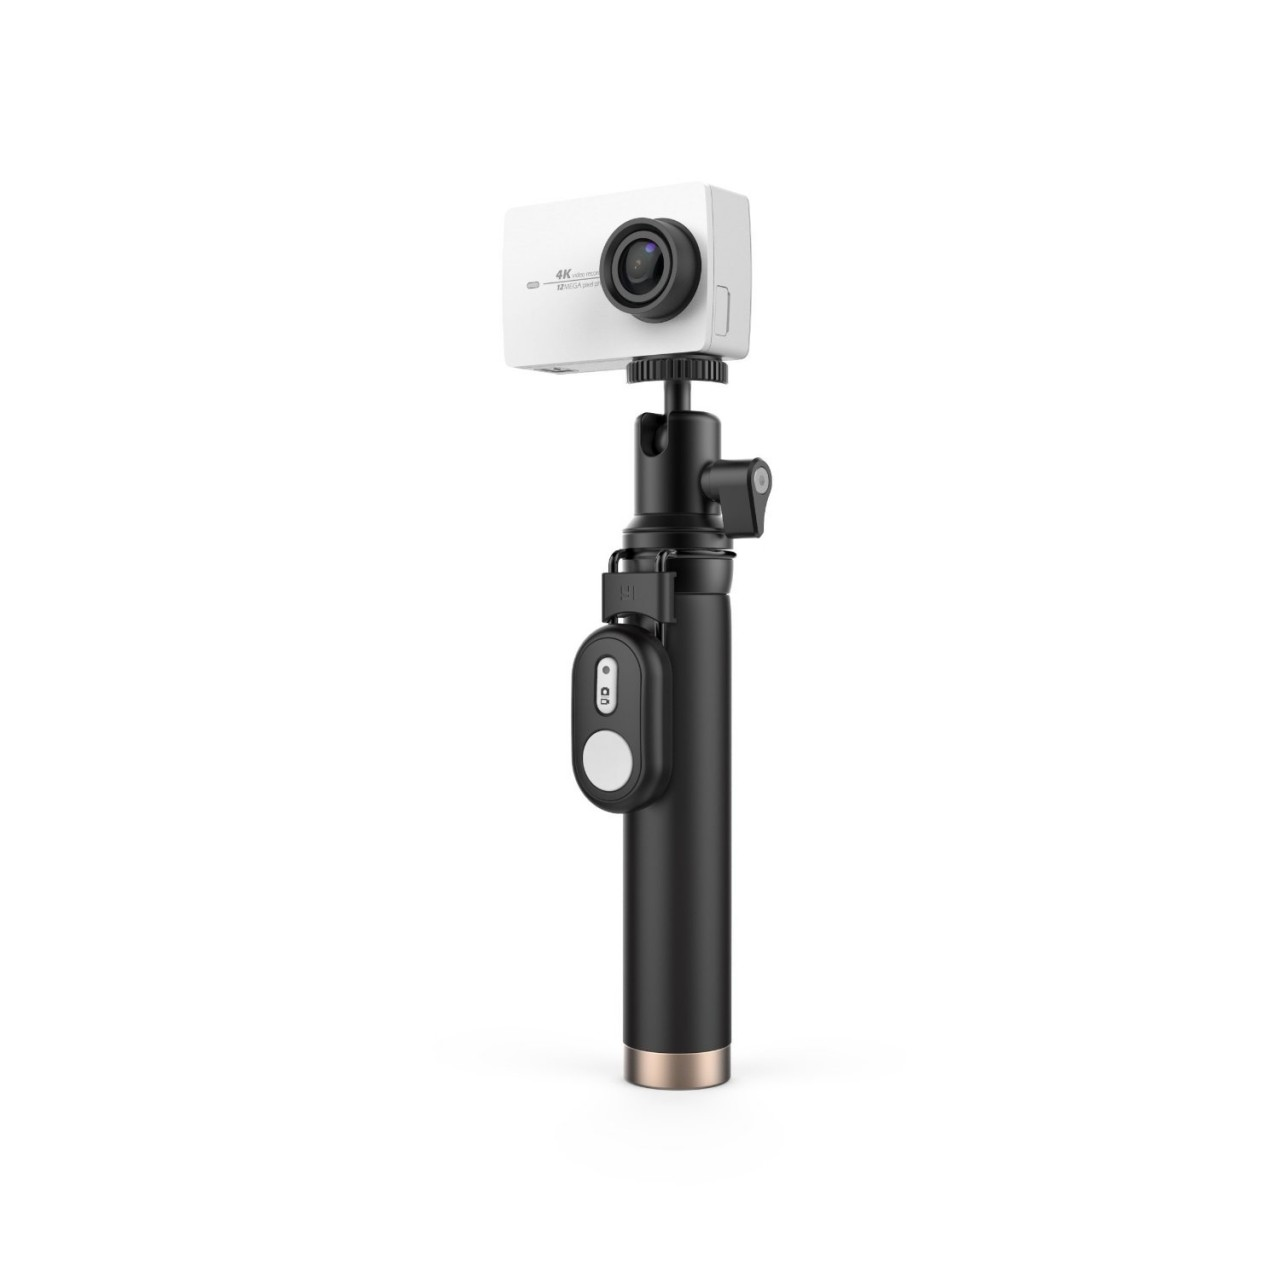 yi 4k action camera with selfie stick bluetooth remote. Black Bedroom Furniture Sets. Home Design Ideas